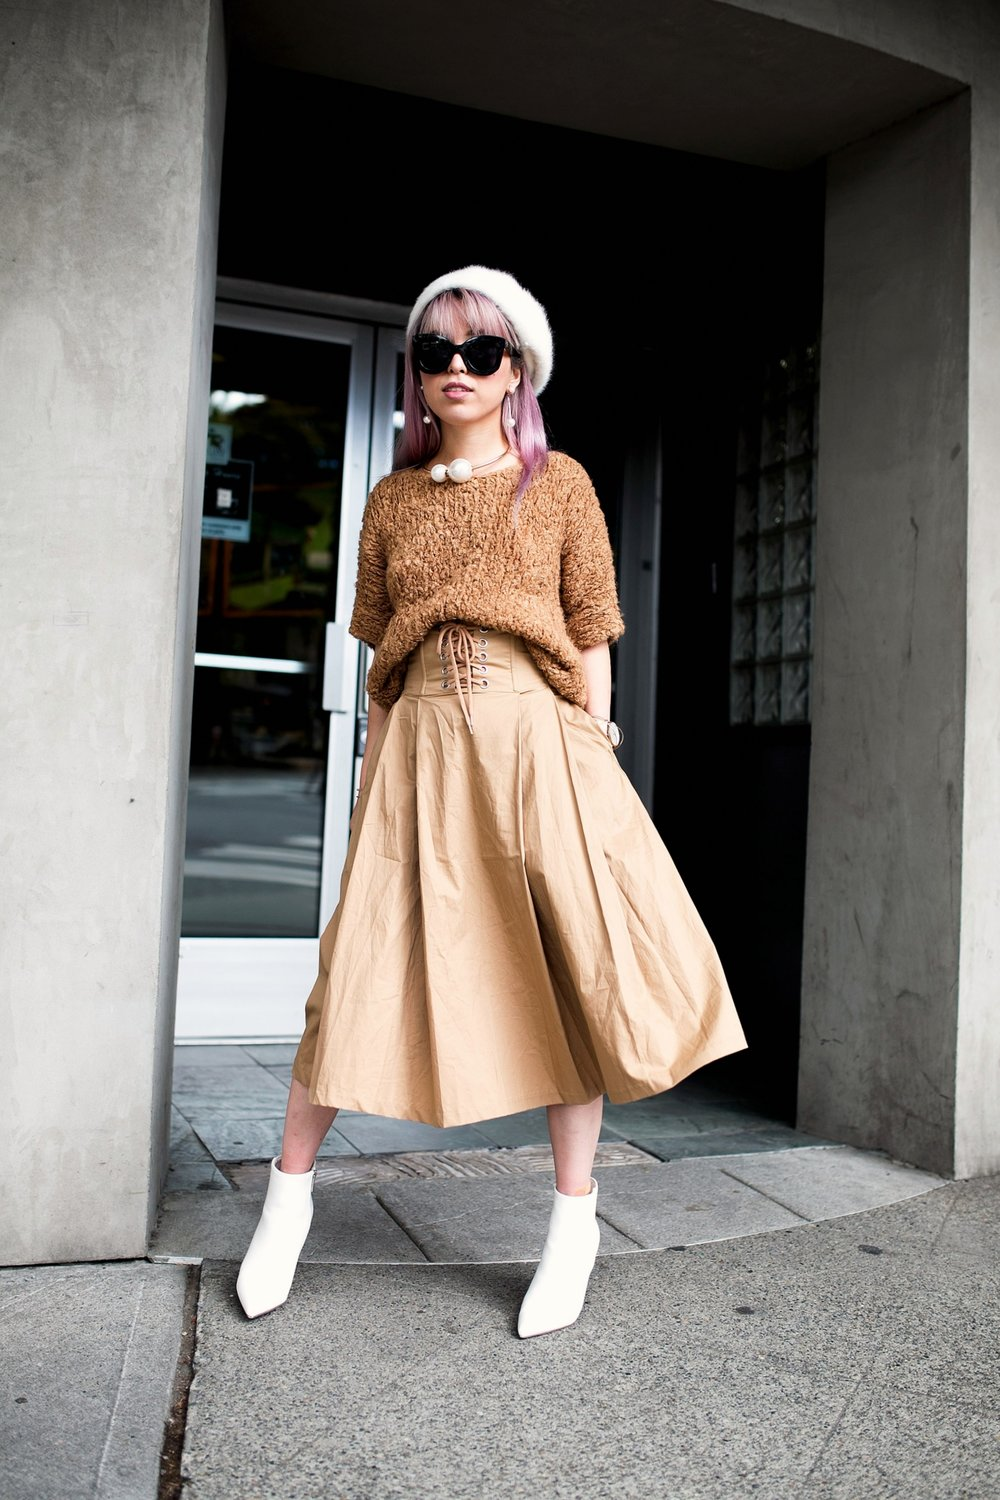 Forever 21 Fluffy White Beret, Express Pearl Collar Necklace, Thrifted Teddy Camel Top, H&M High-waisted camel midi skirt, zara velvet bag, Forever 21 White Ankle Boots, Aika's Love Closet, Seattle Fashion Style Blogger, Japanese, pink hair, street style, petite fashion  3